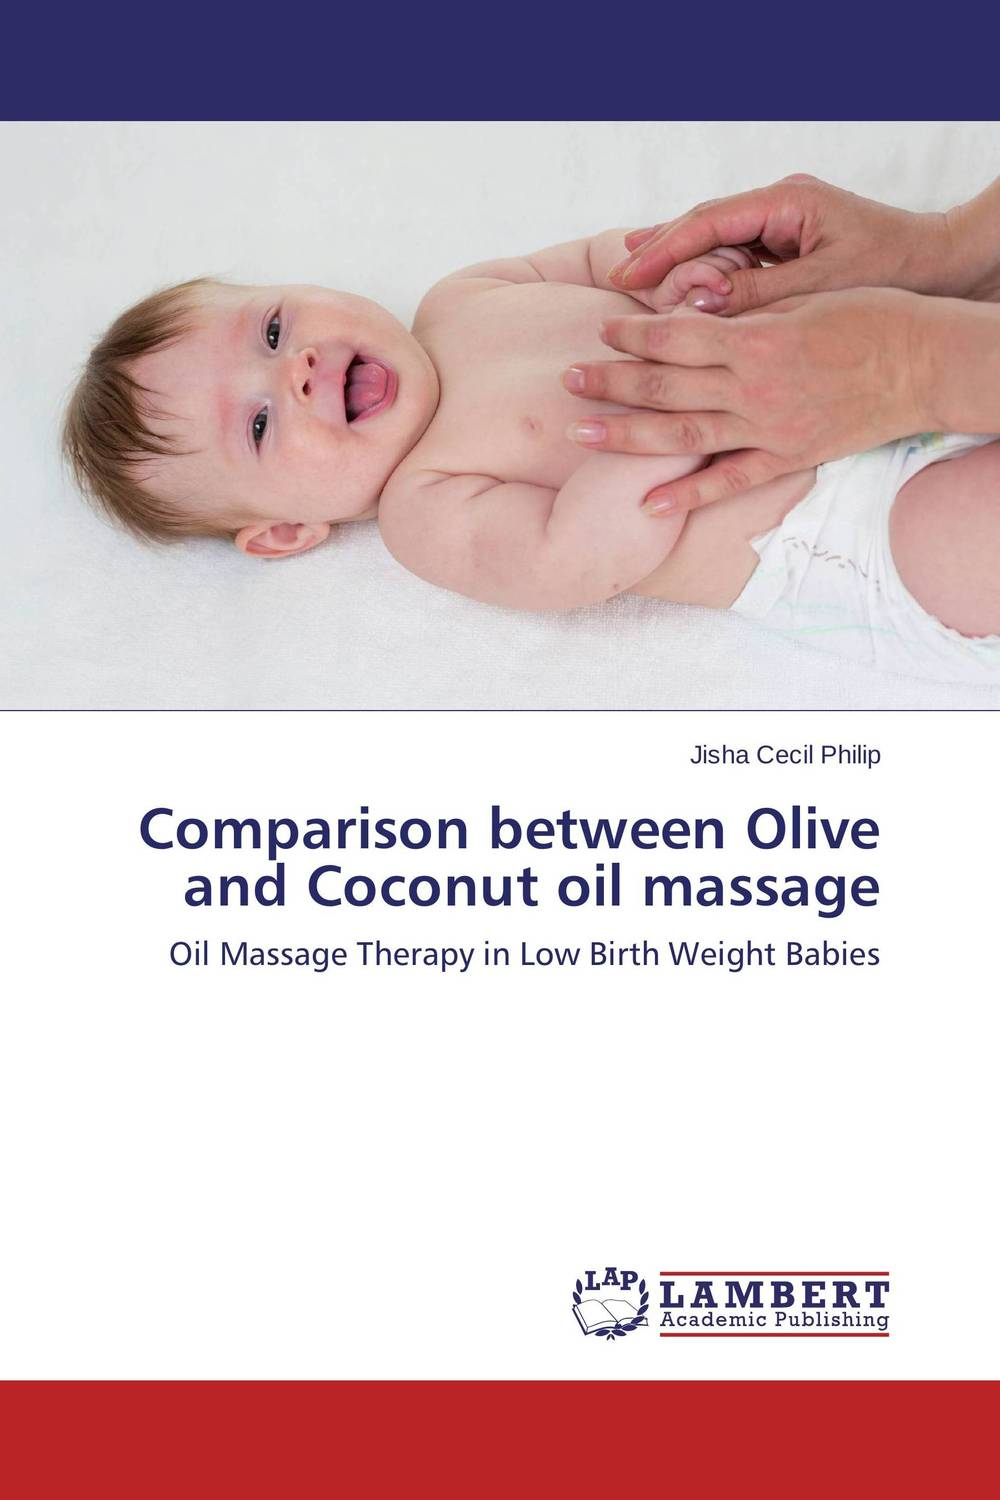 Comparison between Olive and Coconut oil massage manjari singh introducing and reviewing preterm delivery and low birth weight